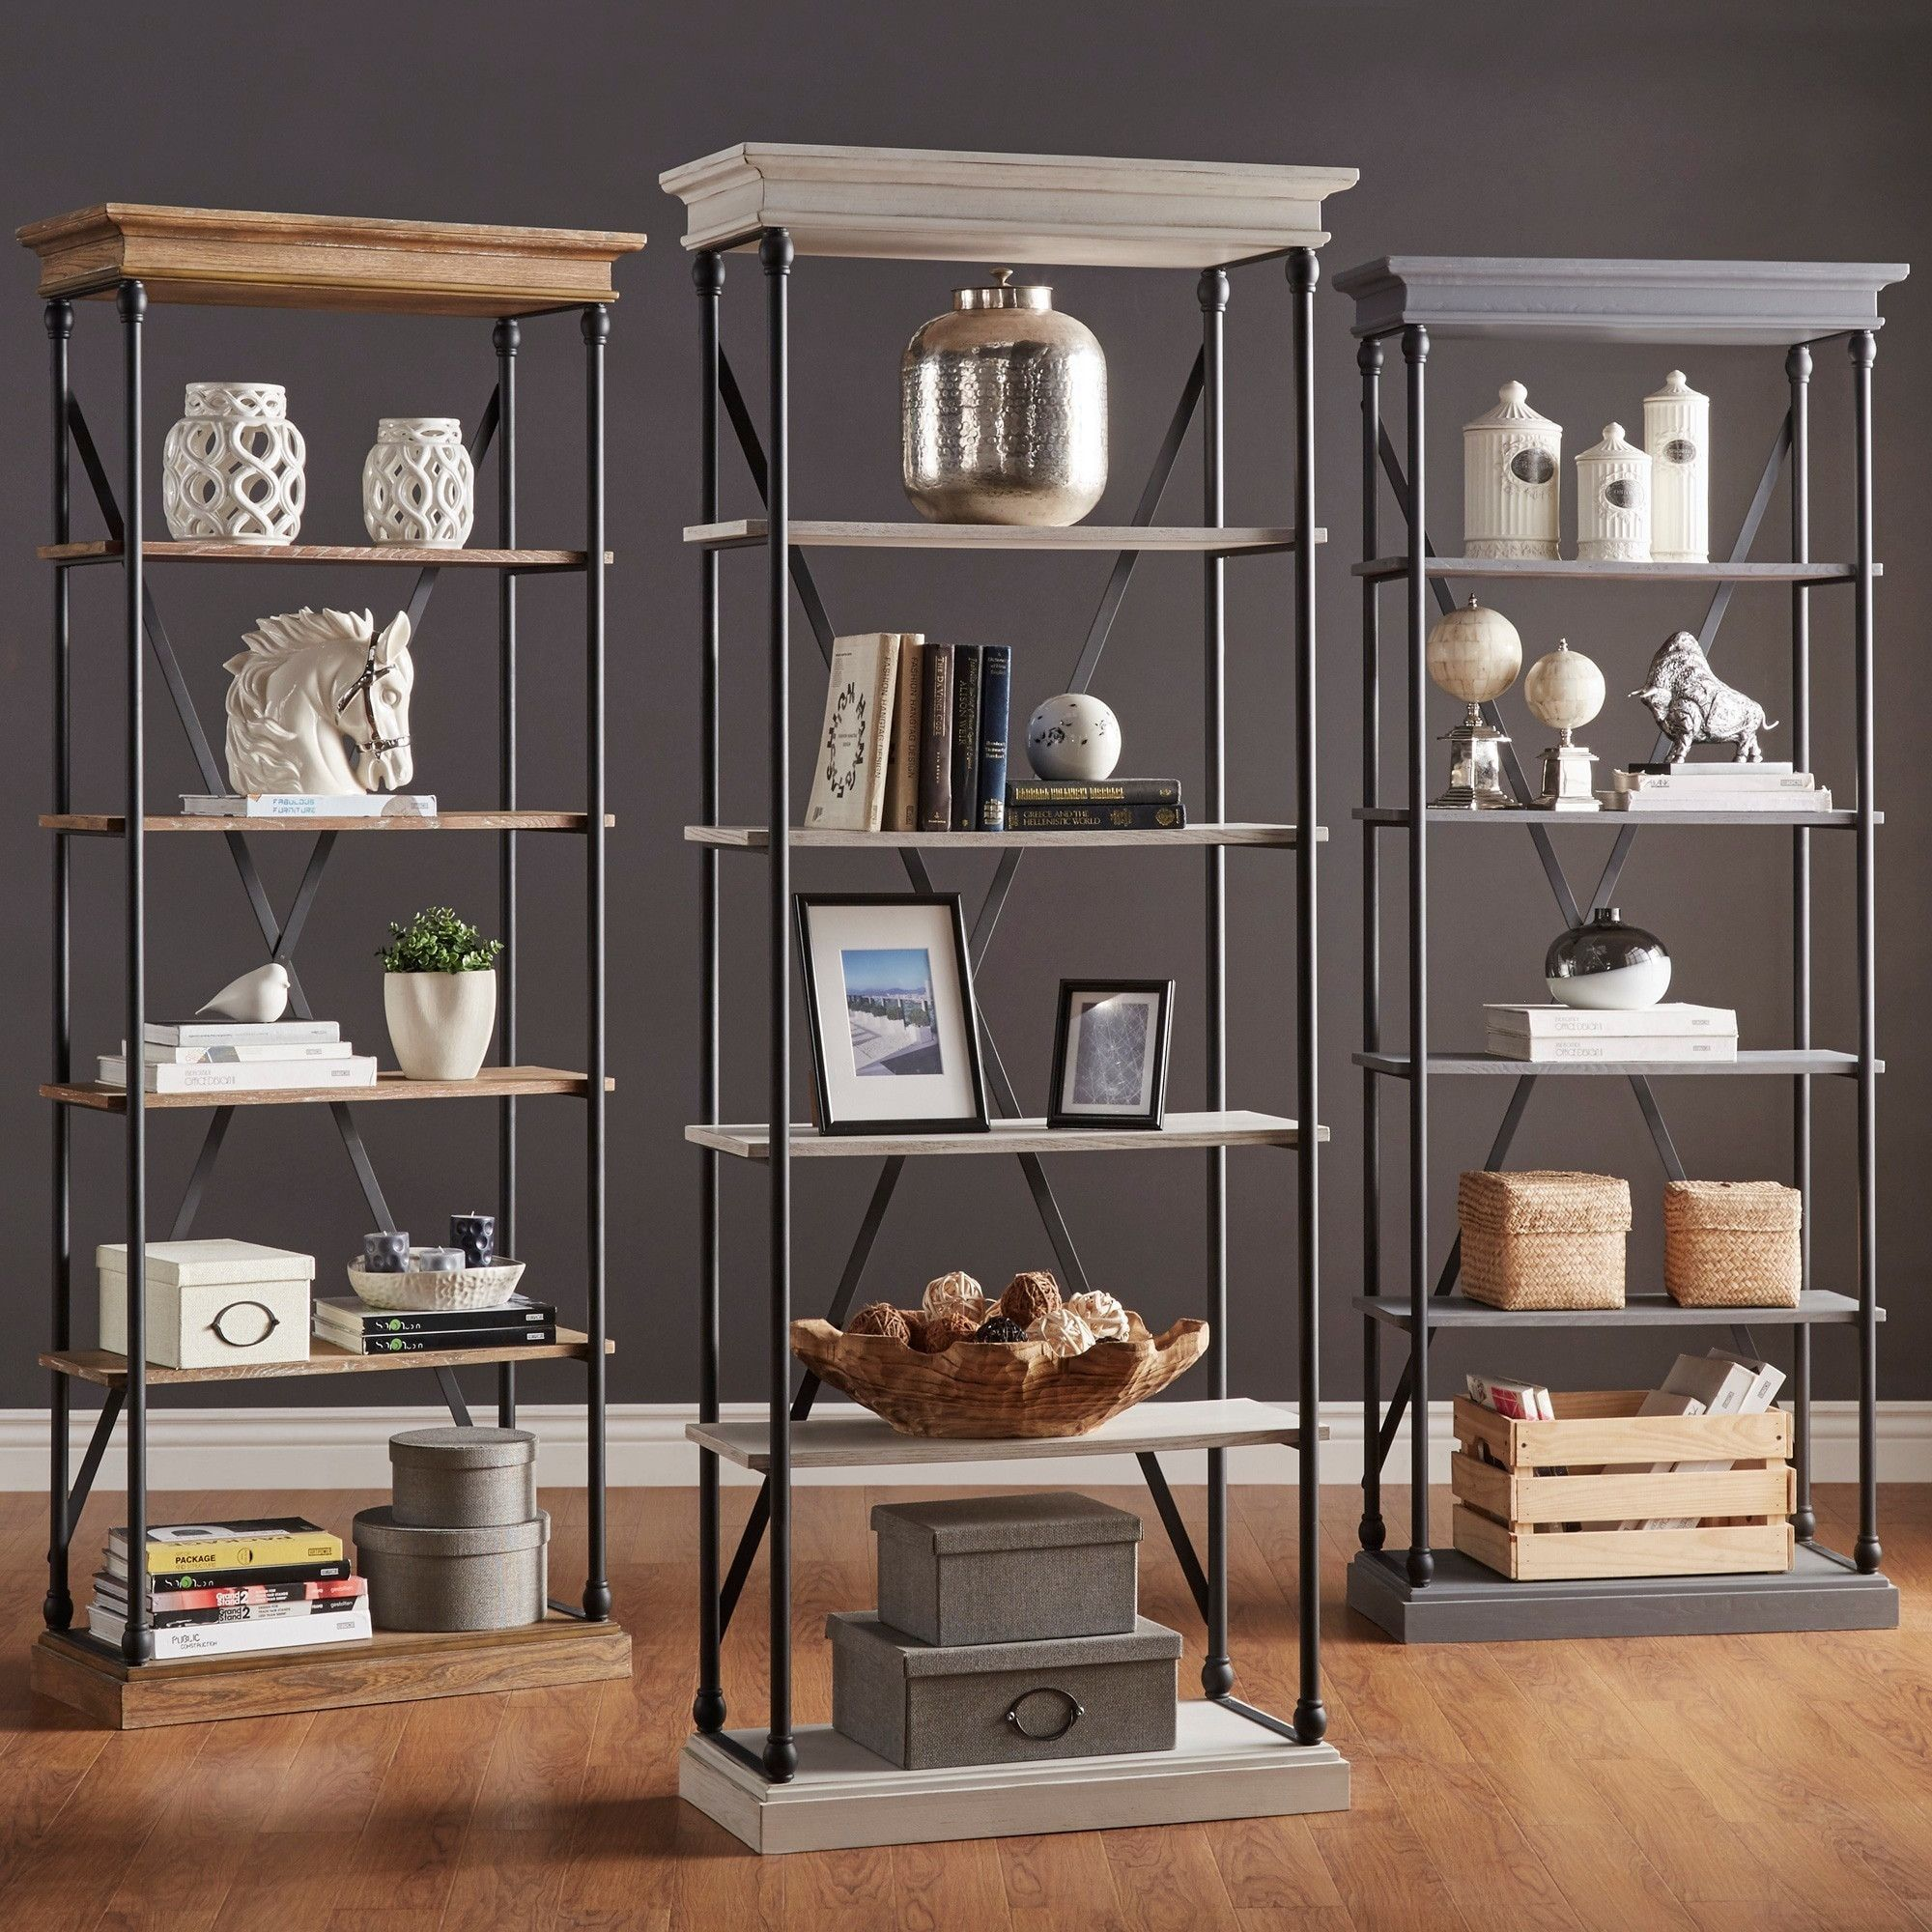 Now available on our store: Barnstone Cornice... Check it out here! http://www.modernboardroomsupplies.com/products/barnstone-cornice-etagere-bookcase?utm_campaign=social_autopilot&utm_source=pin&utm_medium=pin